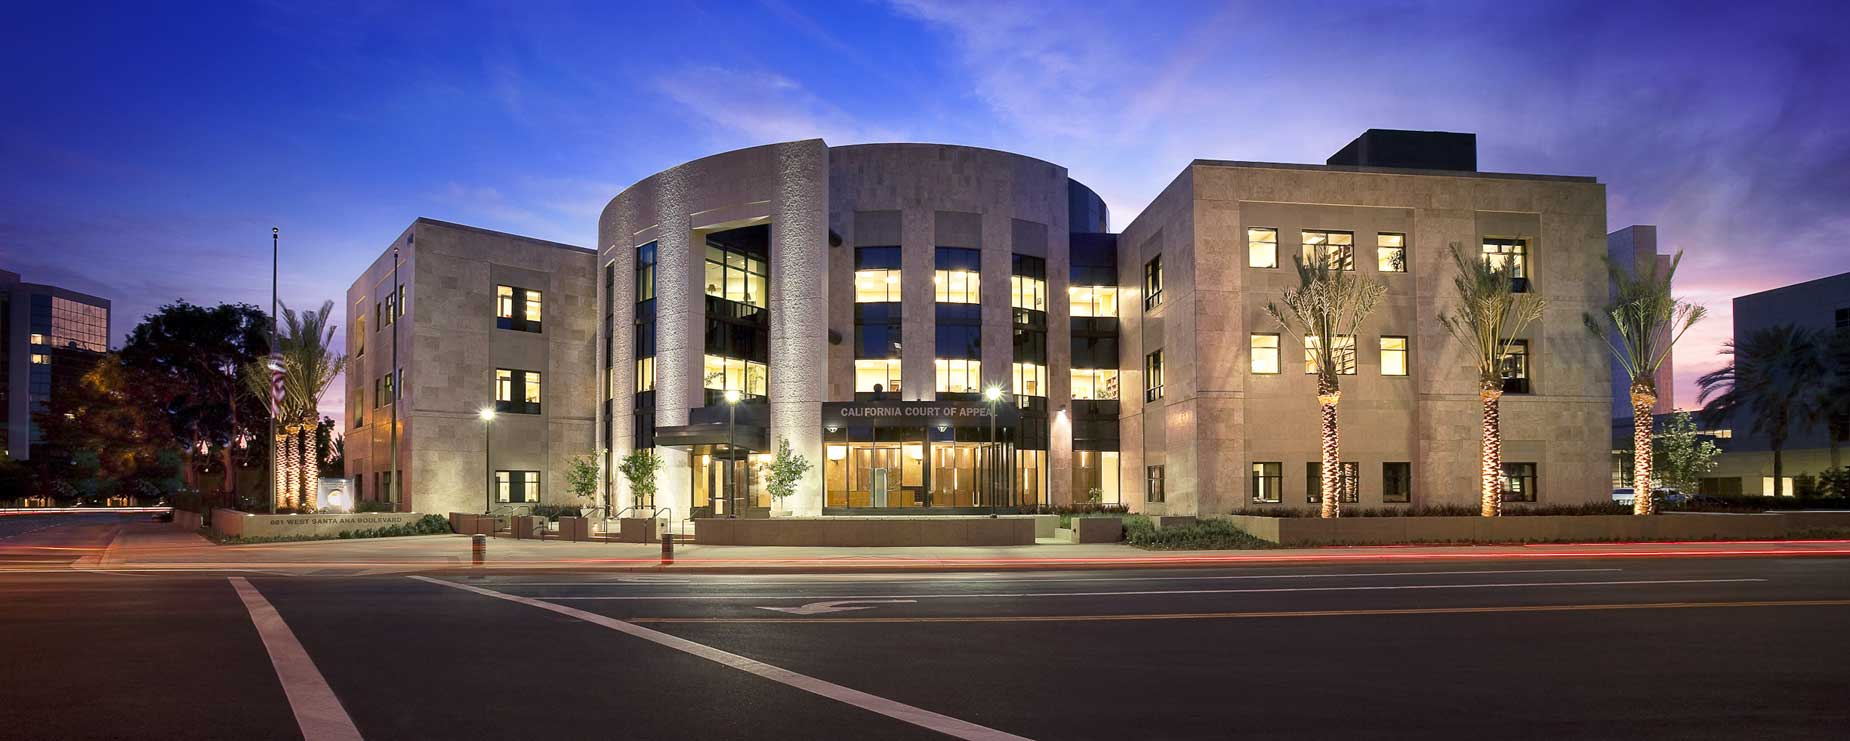 State of California Appellate Court